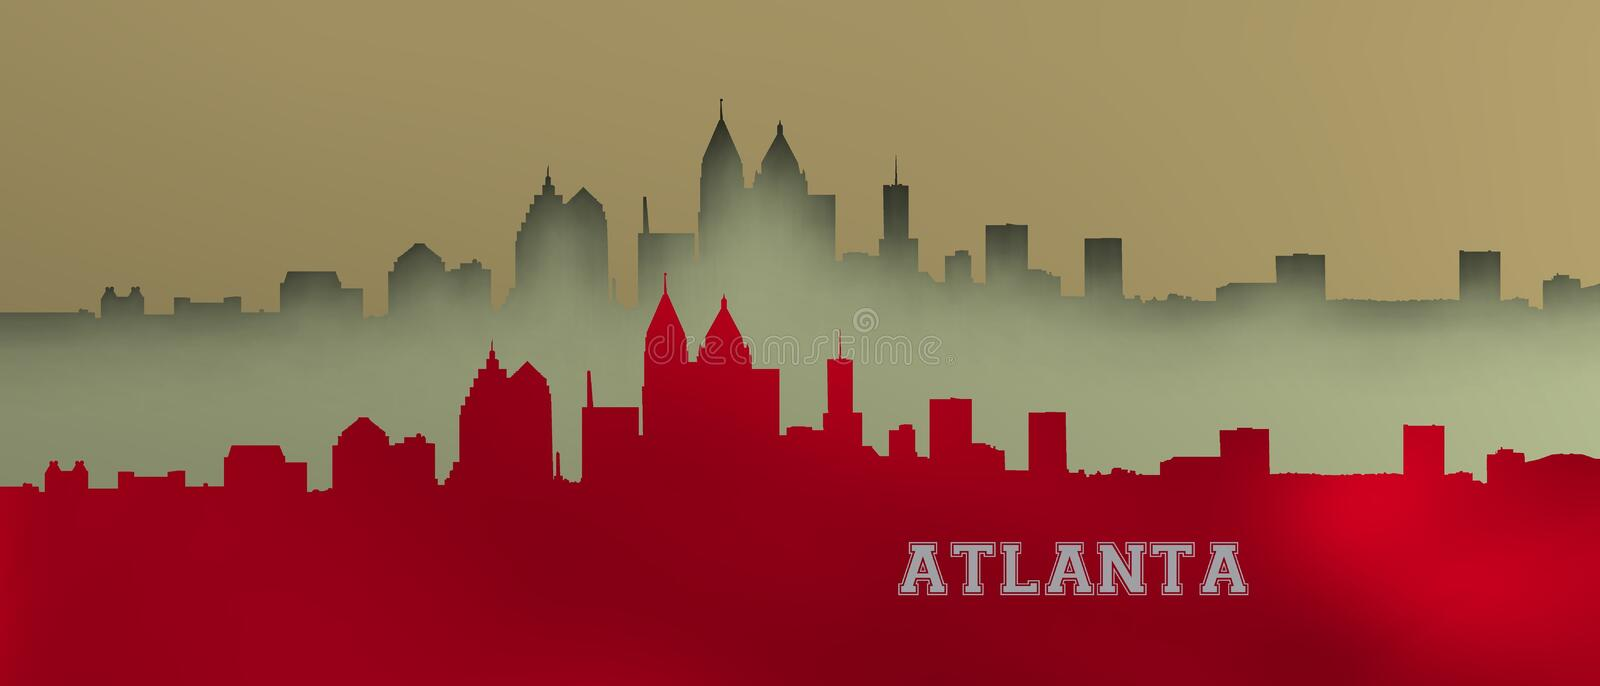 Sparkly Atlanta skyline. royalty free illustration